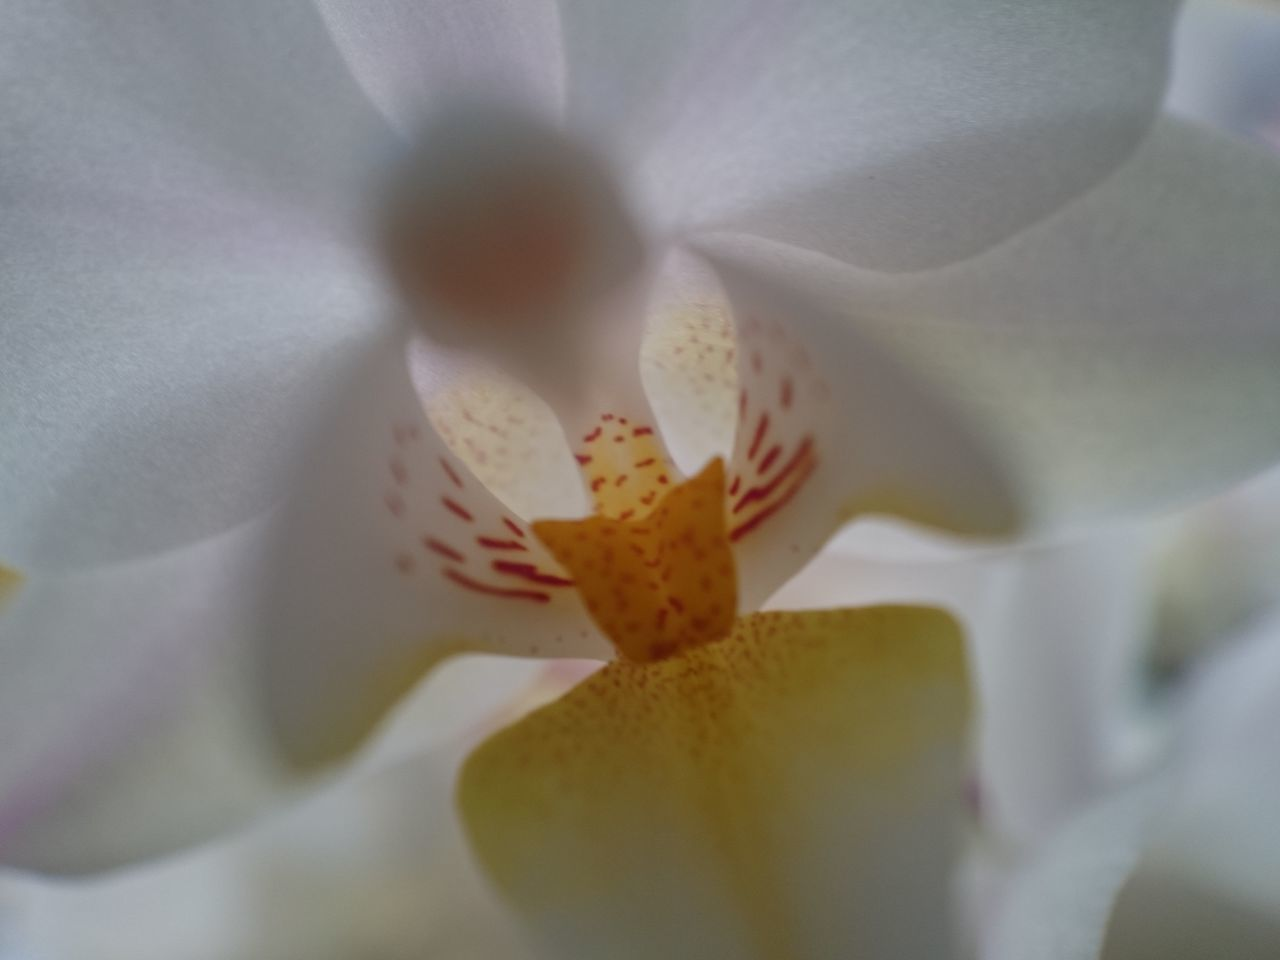 Flower Freshness Beauty In Nature White Color Xperia Z3 Compact Purity Purist No Edit No Filter 2016 Picture Orchid Macro_flower Macroshot White Flower White Background